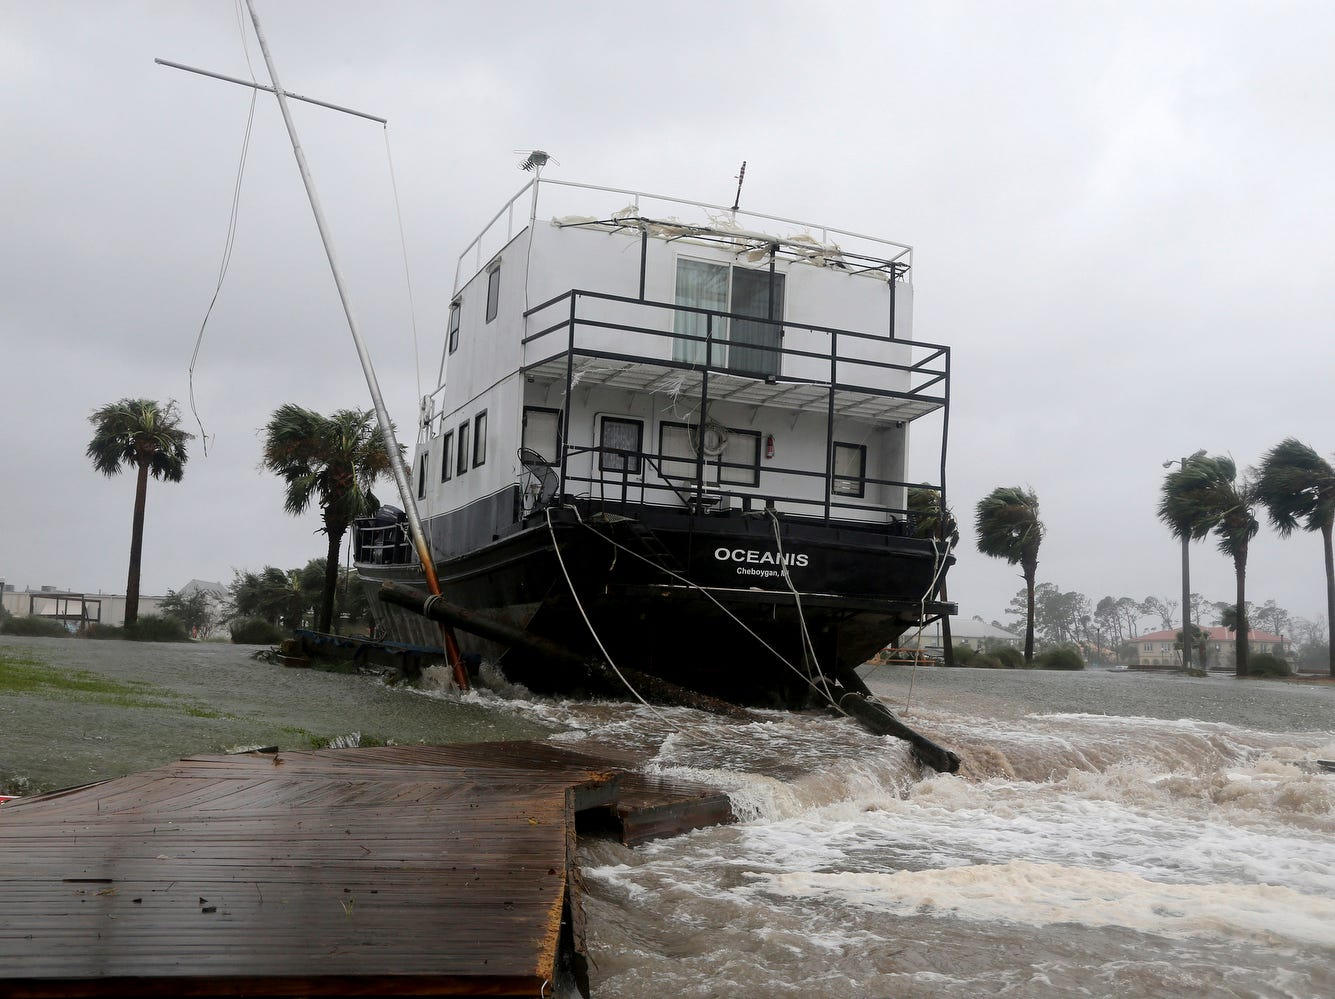 The Oceanis is grounded by a tidal surge at the Port St. Joe Marina, Wednesday, in Port St. Joe, Fla.